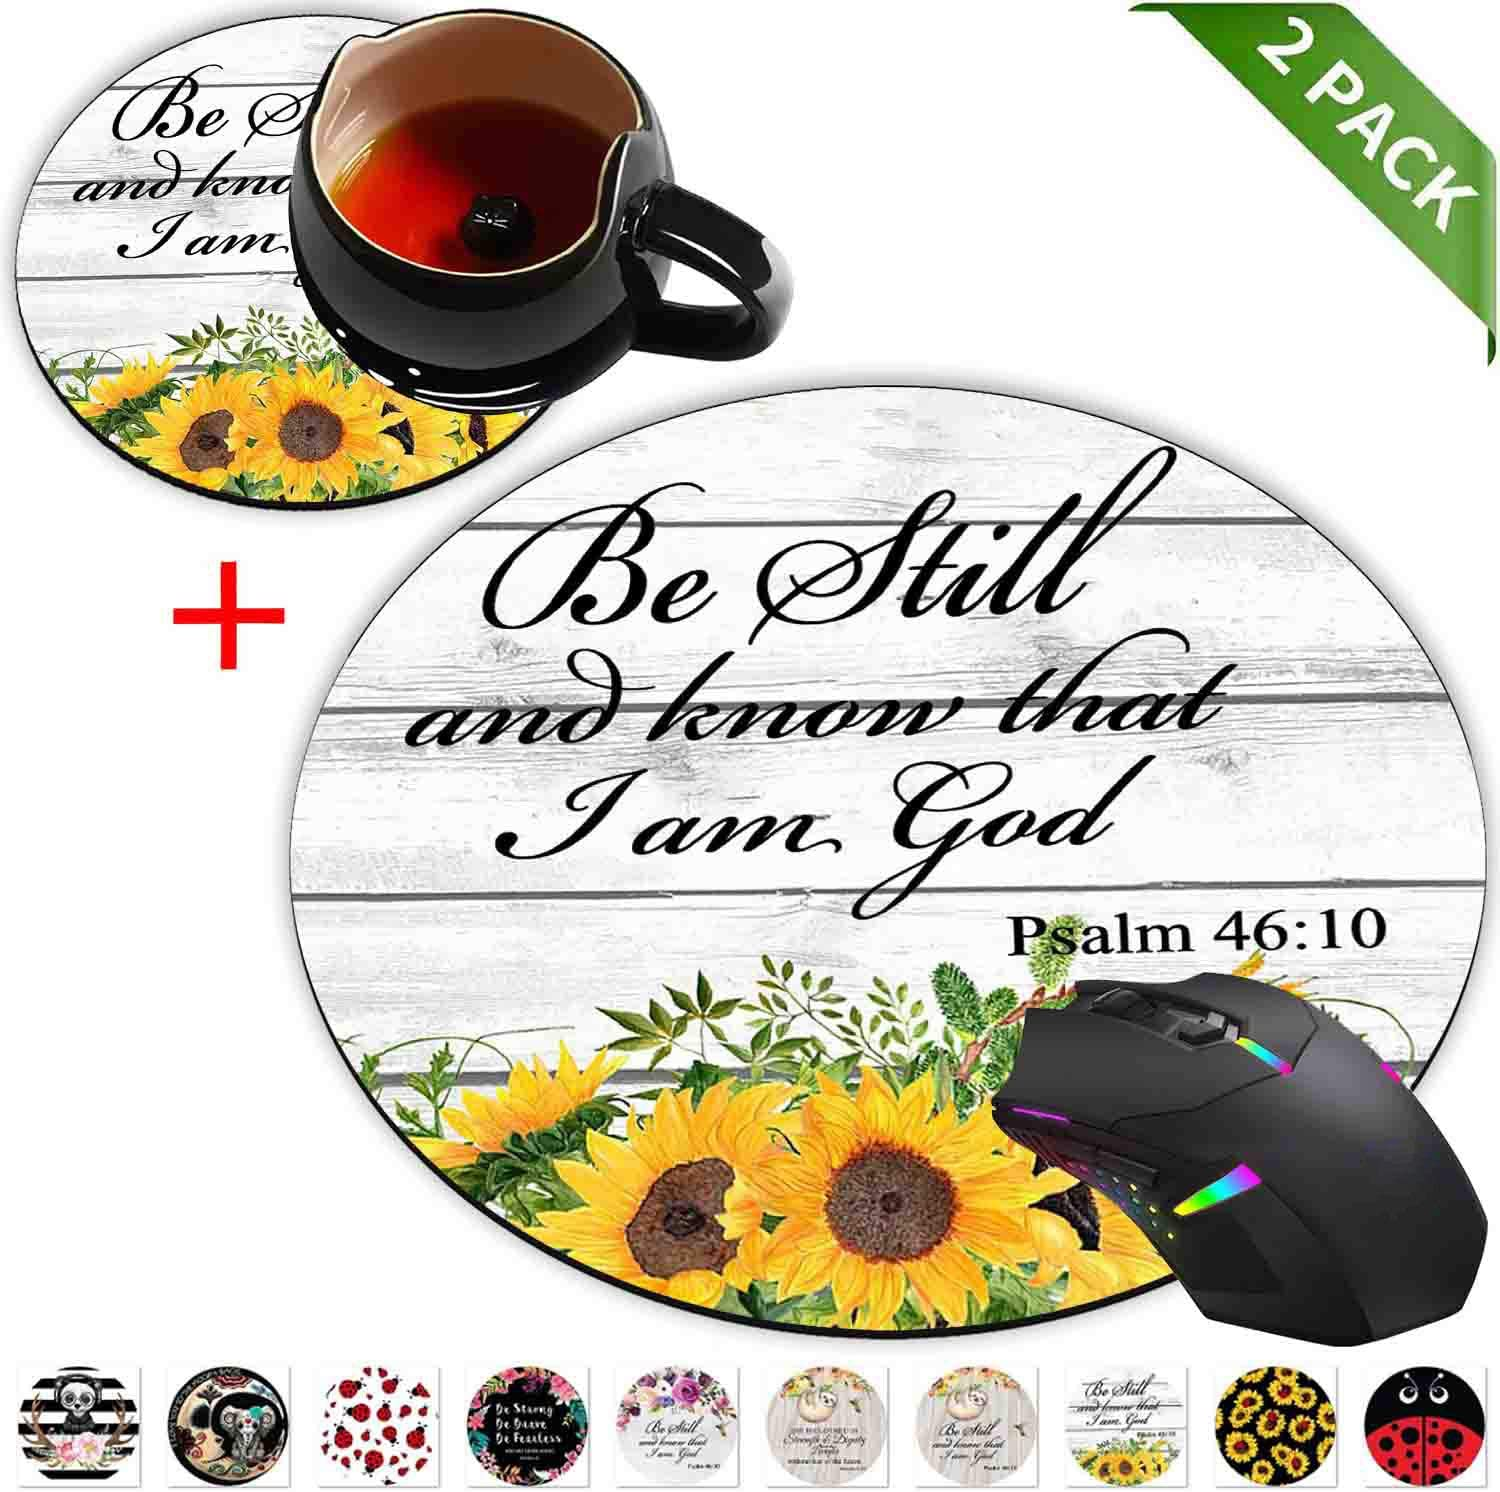 Round Mouse Pad and Coasters Set, Psalm 46:10 Christian Bible Sunflowers Yellow Watercolor Floral Mousepad, Anti Slip Rubber Round Mousepads Desktop Notebook Mouse Mat for Working and Gaming